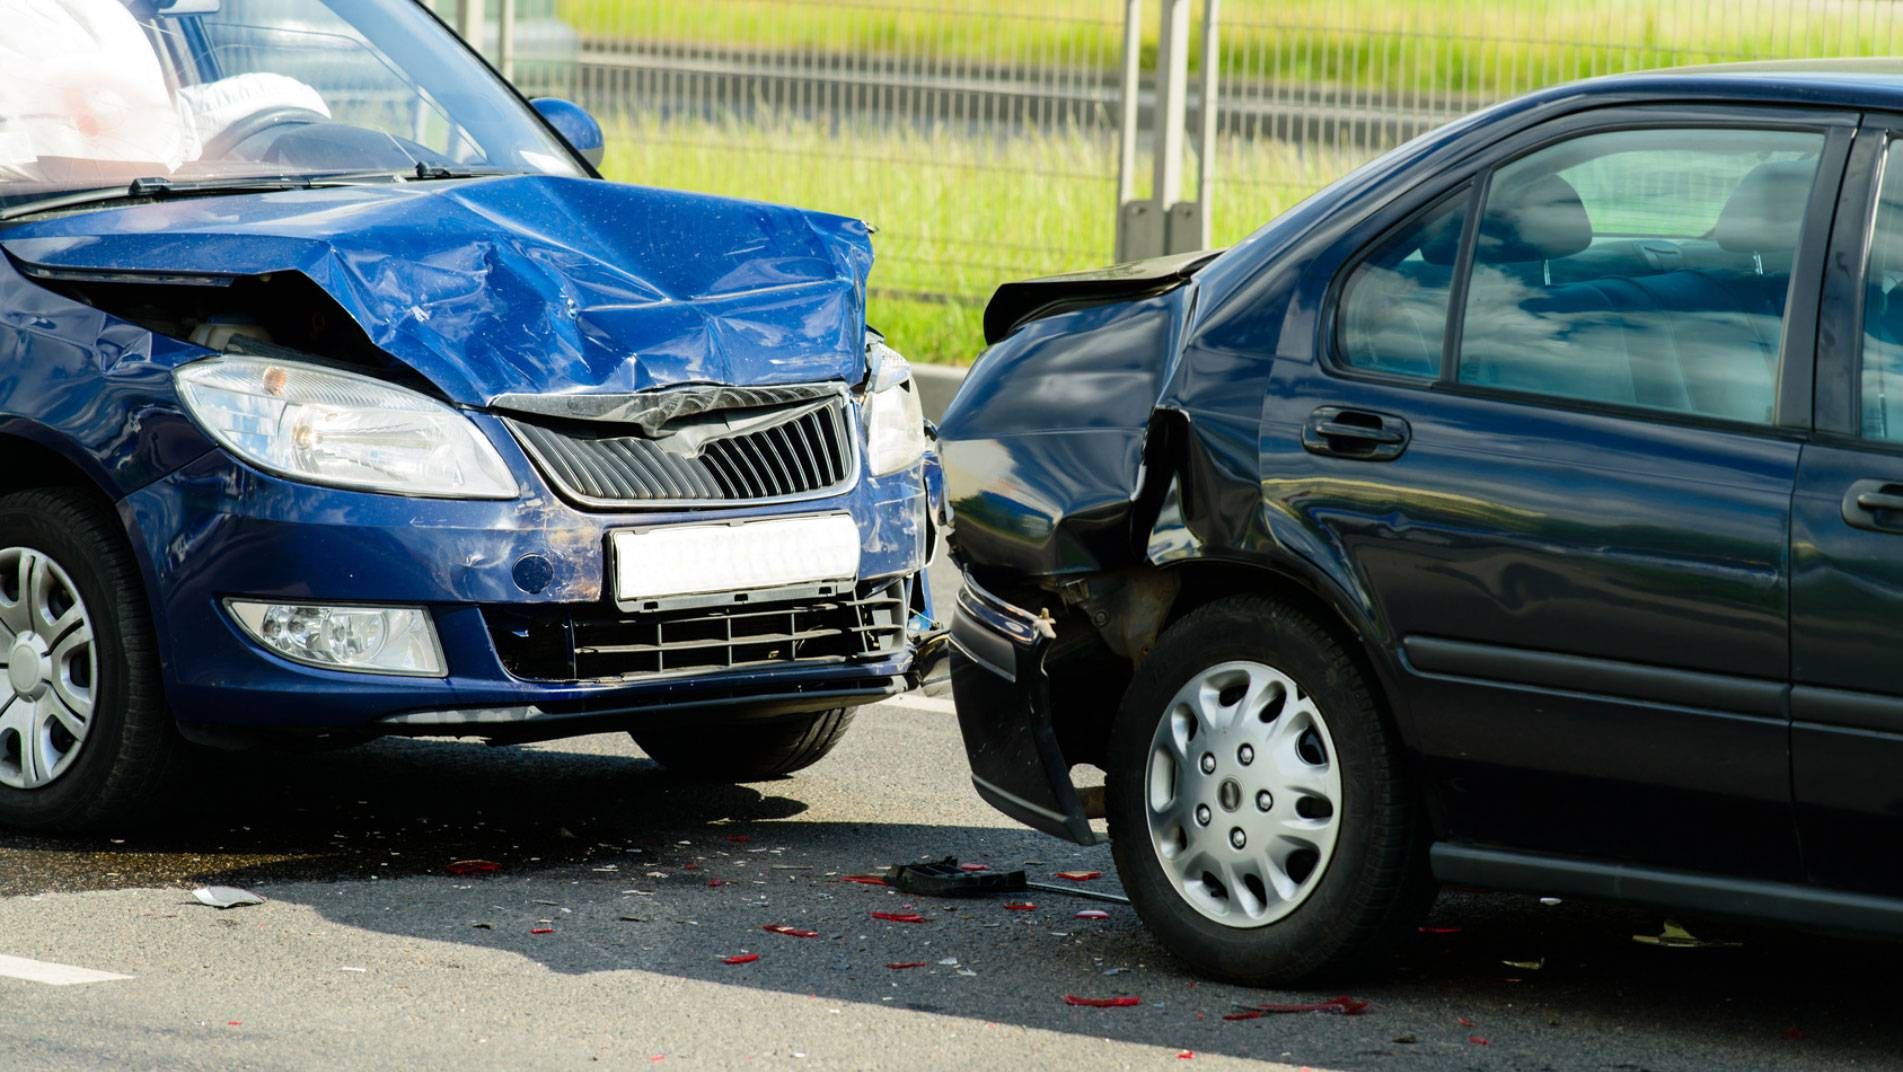 Charleston Texting While Driving Accident Attorneys